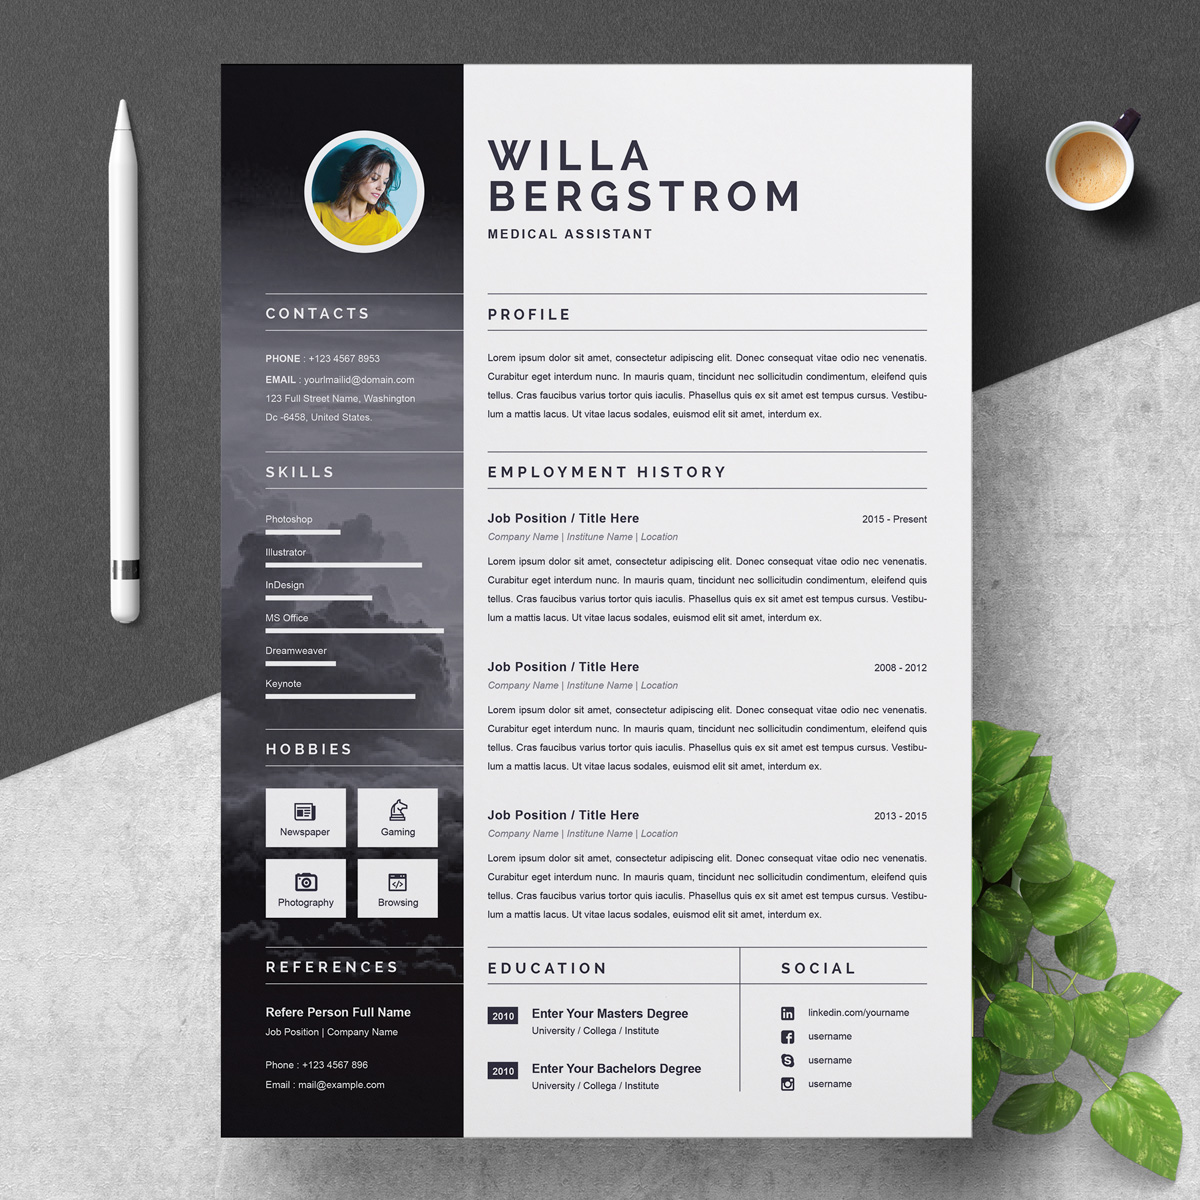 https://s3u.tmimgcdn.com/1860567-1554009162383_01_Clean-Professional-Creative-and-Modern-Resume-CV-Curriculum-Vitae-Design-Template-MS-Word-Apple-Pages-PSD-Free-Download.jpg